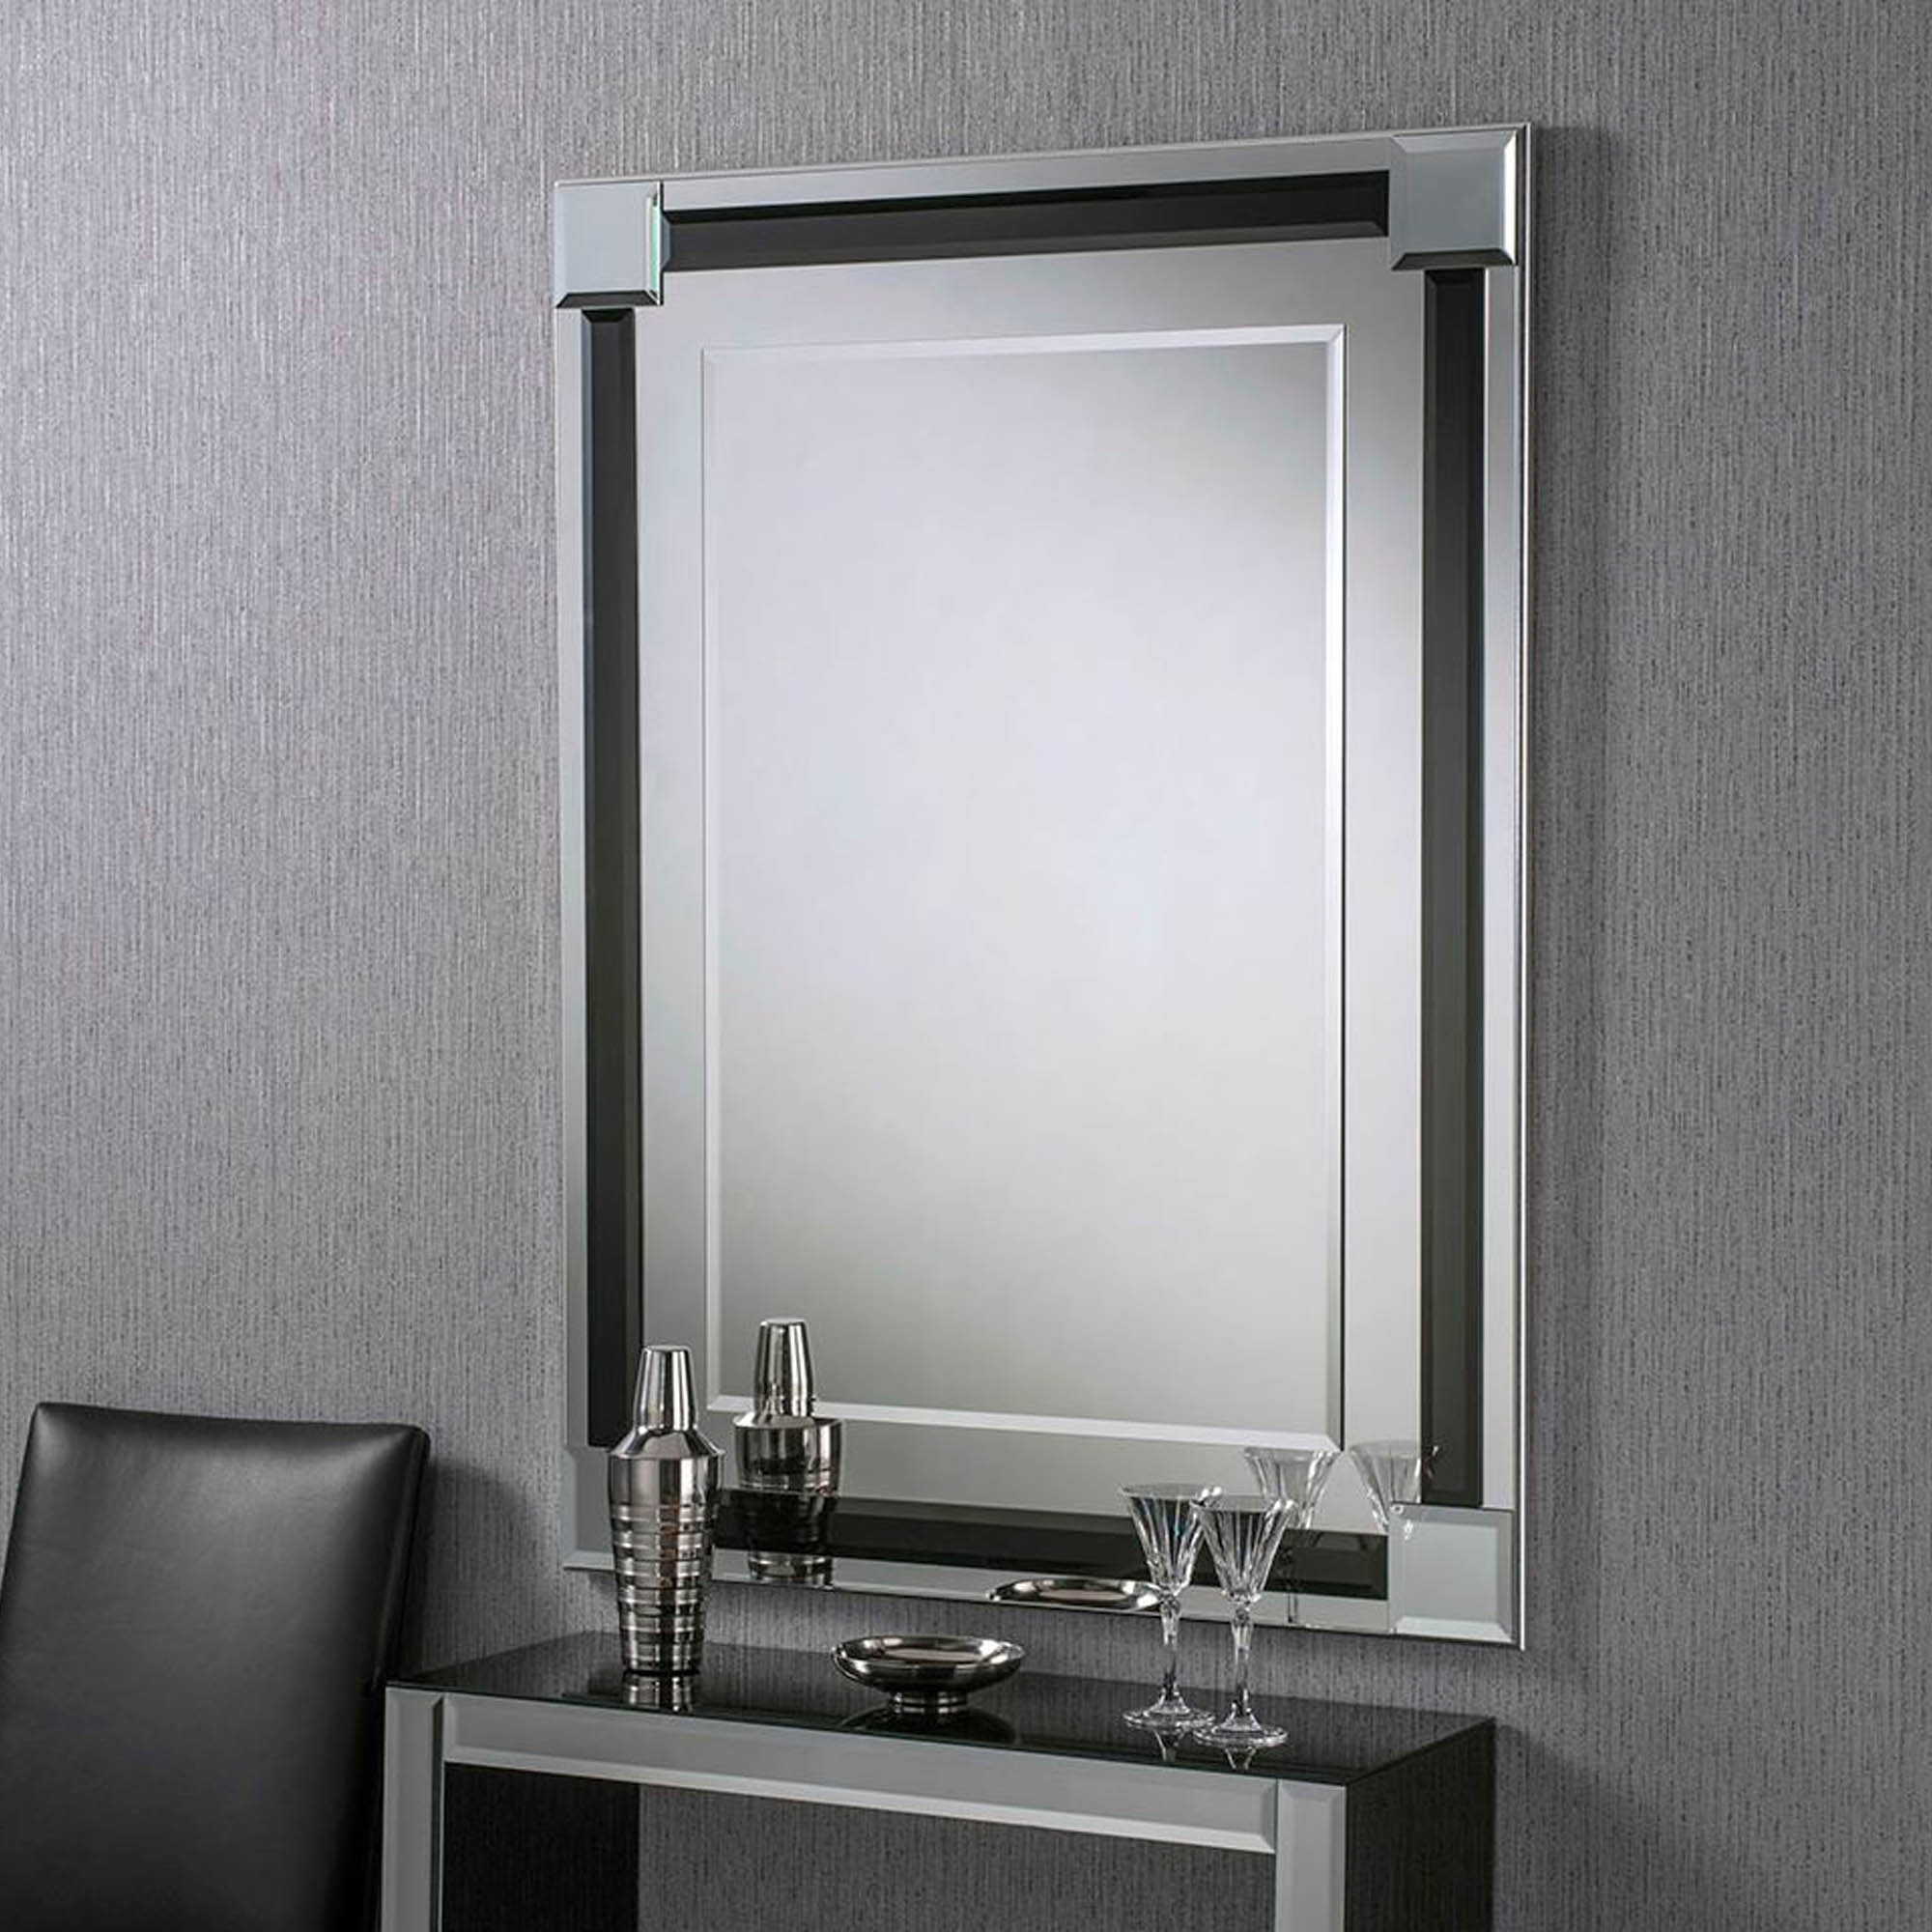 2019 Contemporary Black Wall Mirrors Within Bevelled Contemporary Rectangular Black Wall Mirror (View 15 of 20)